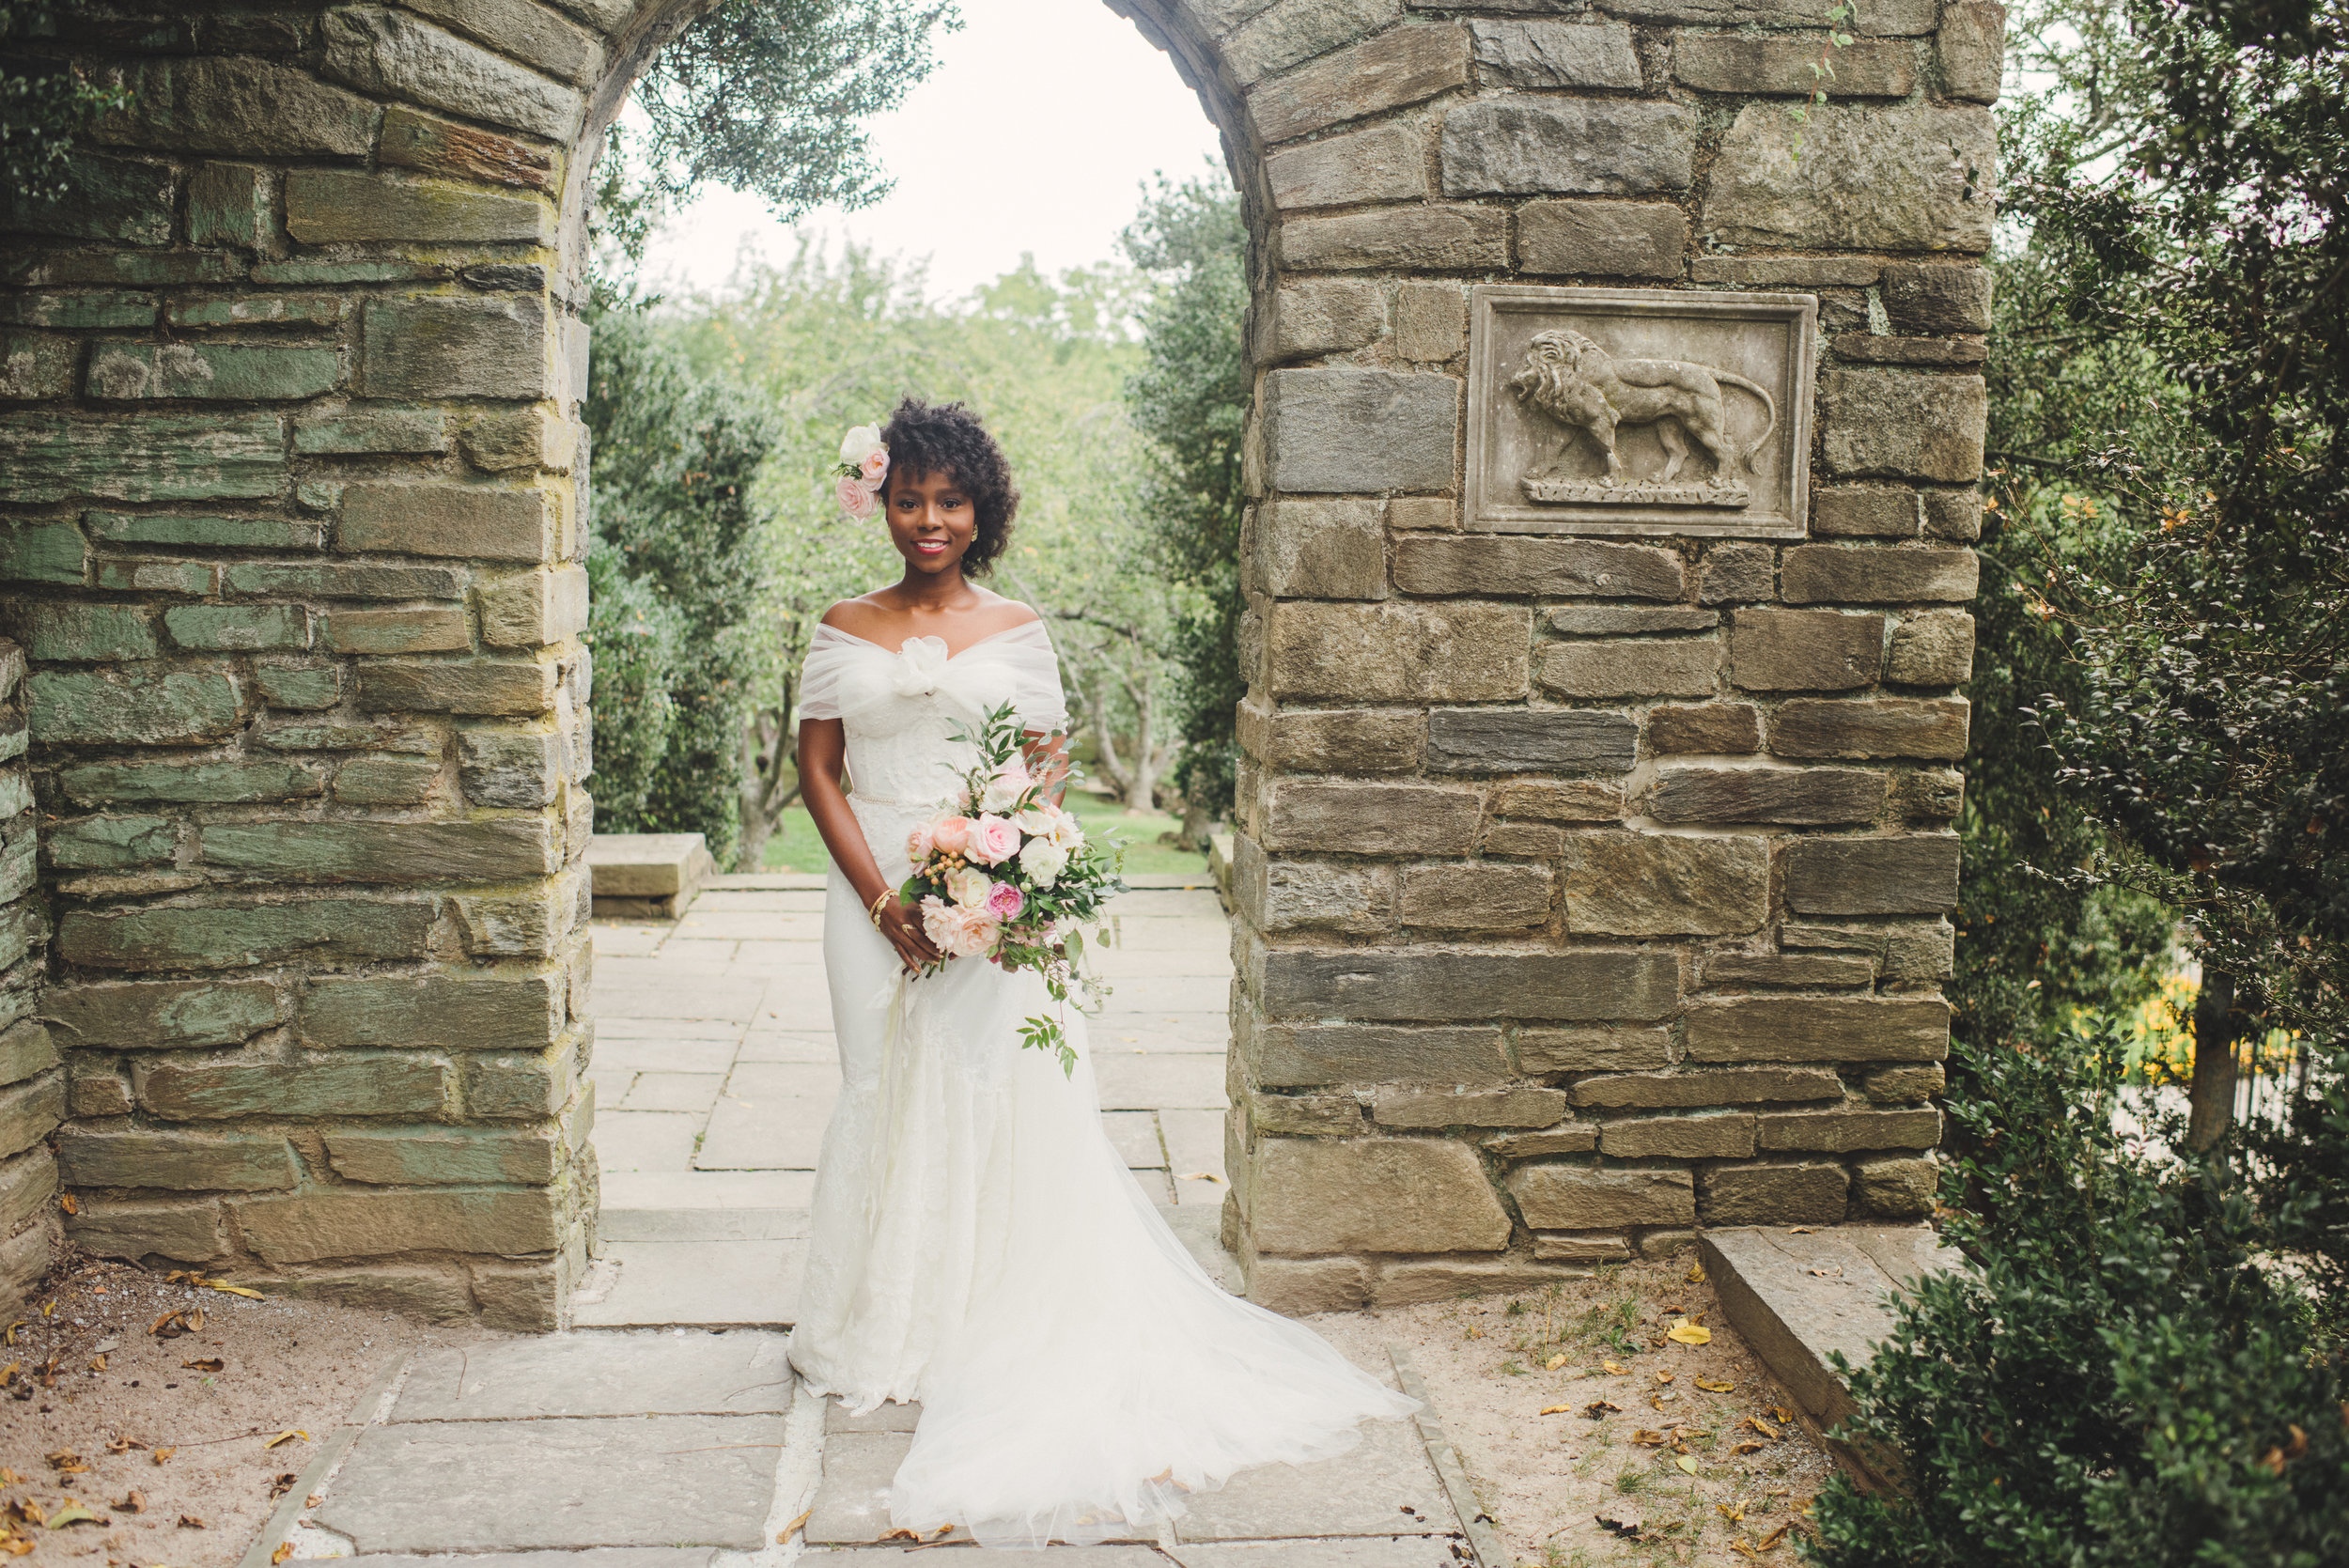 GLENVIEW MANSION WEDDING - INTIMATE WEDDING PHOTOGRAPHER - TWOTWENTY by CHI-CHI AGBIM-145.jpg